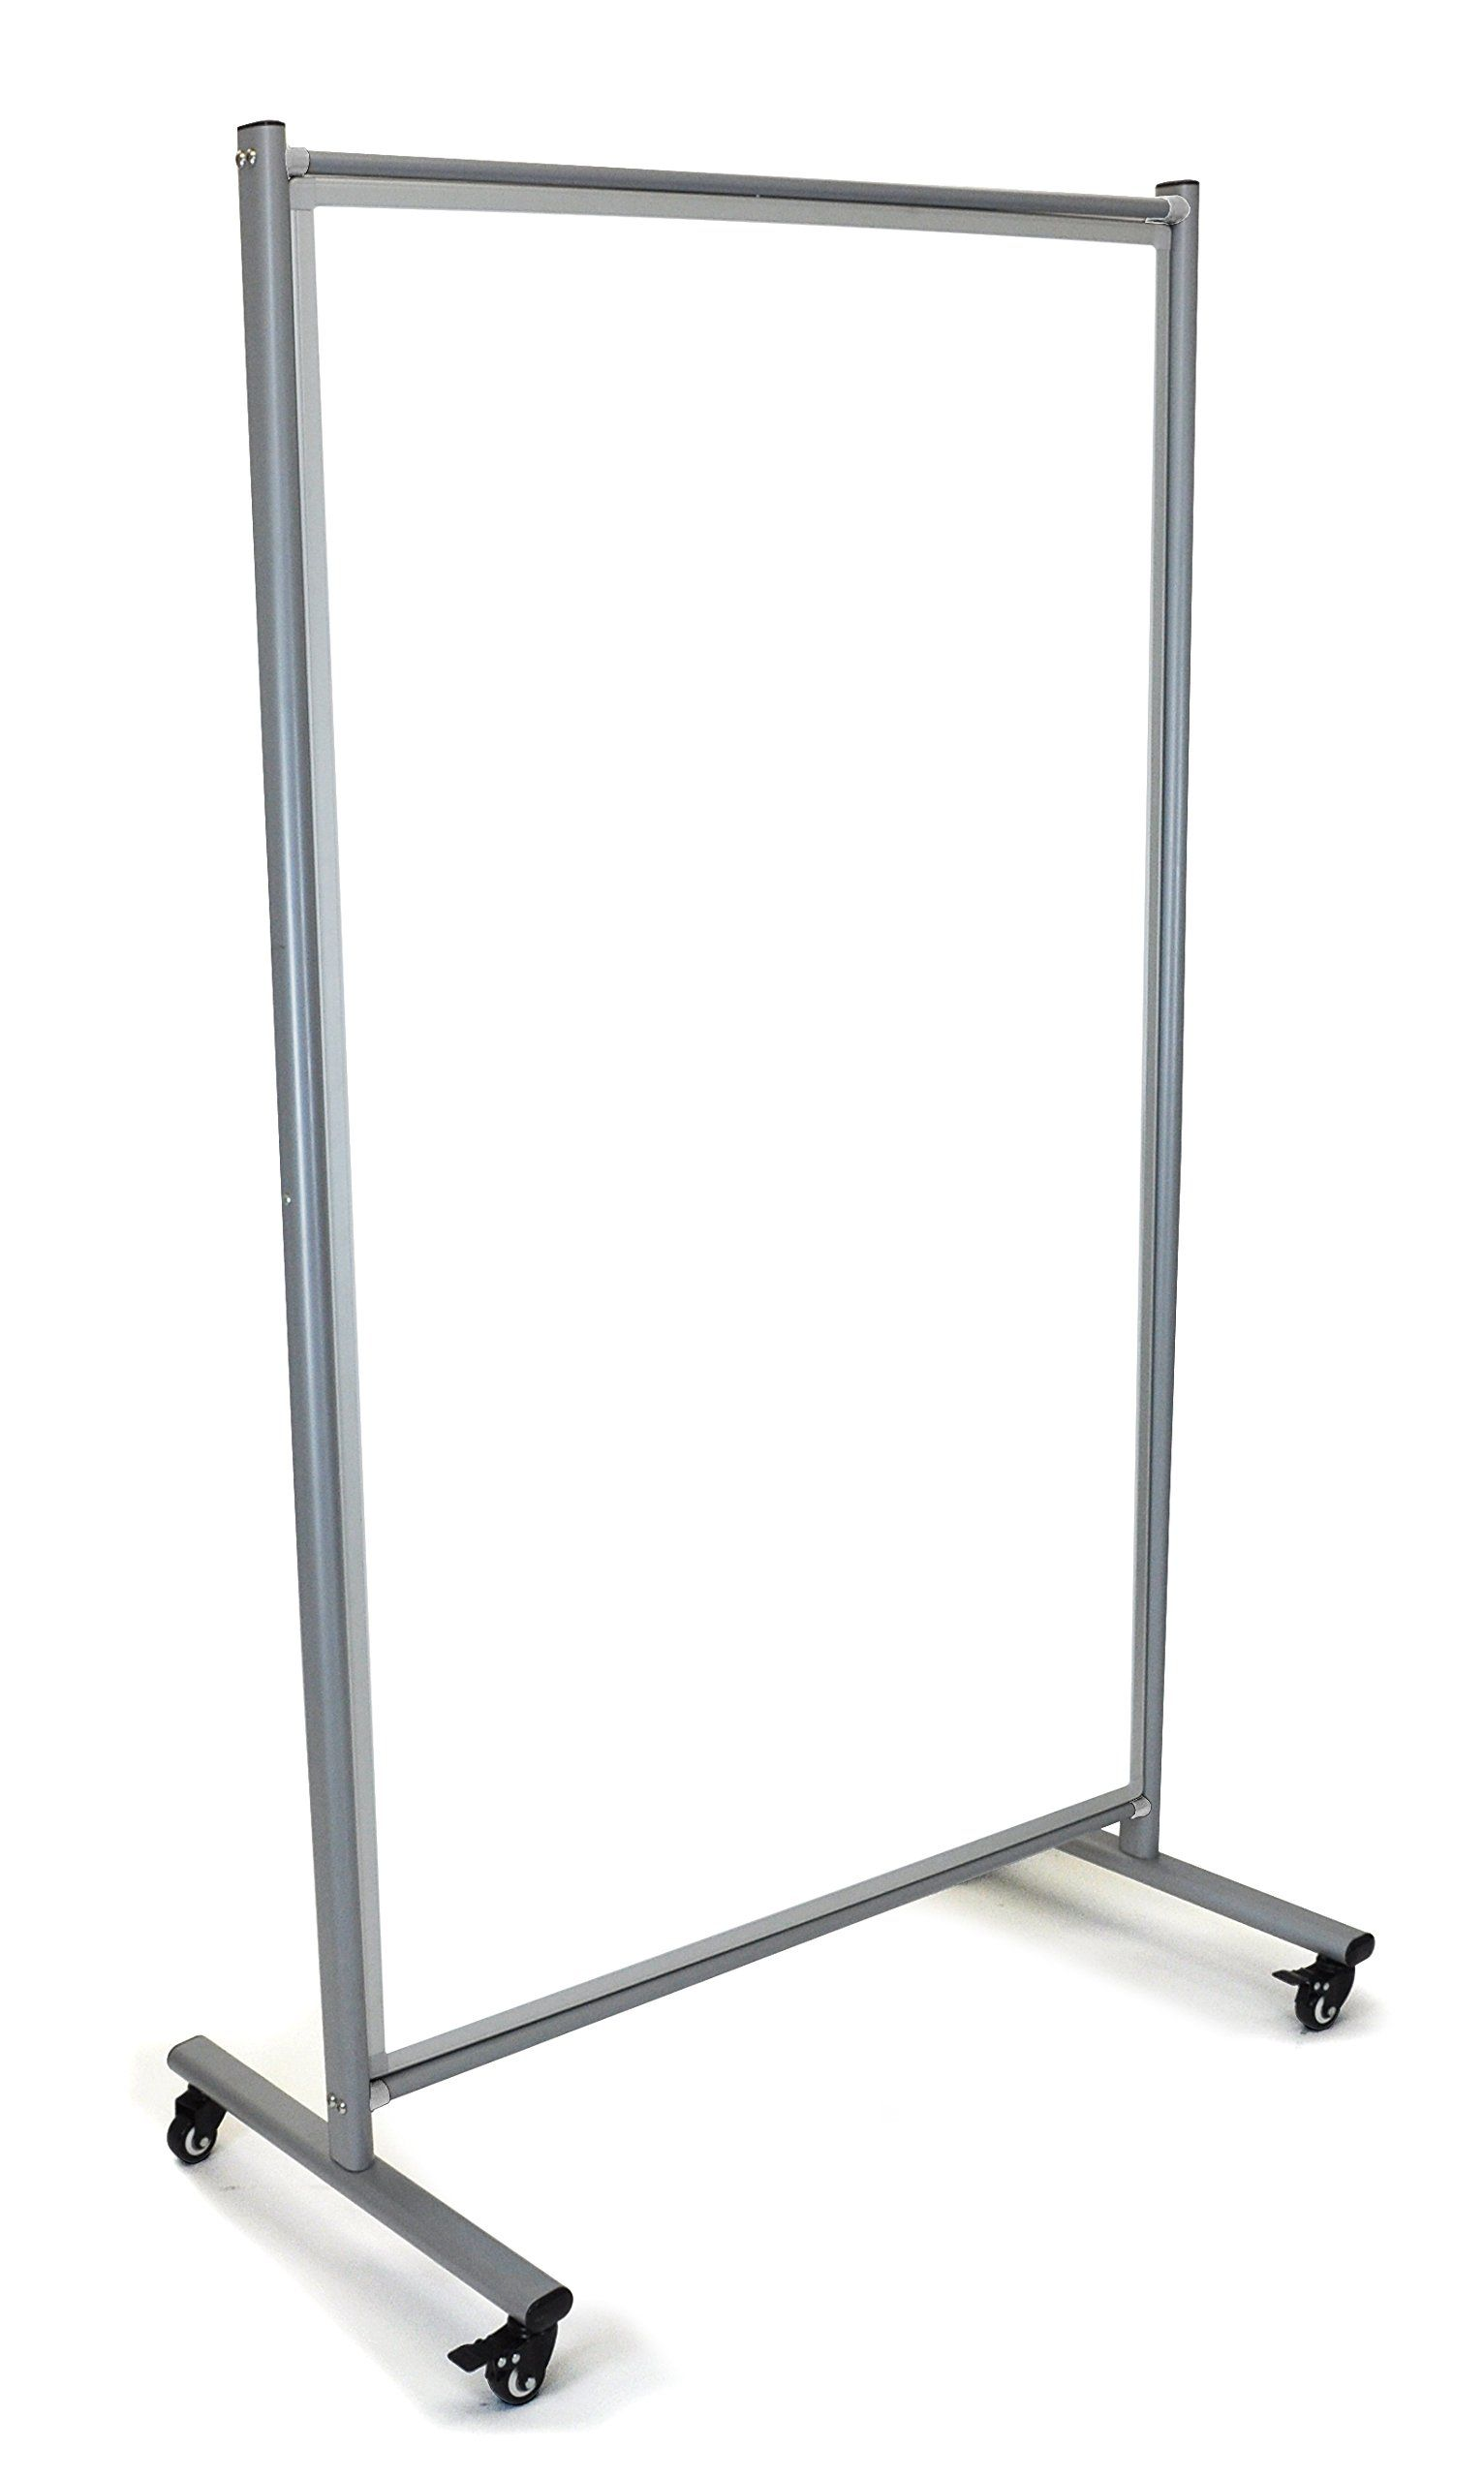 Robot Check Mobile Whiteboard Portable Room Dividers Folding Room Dividers